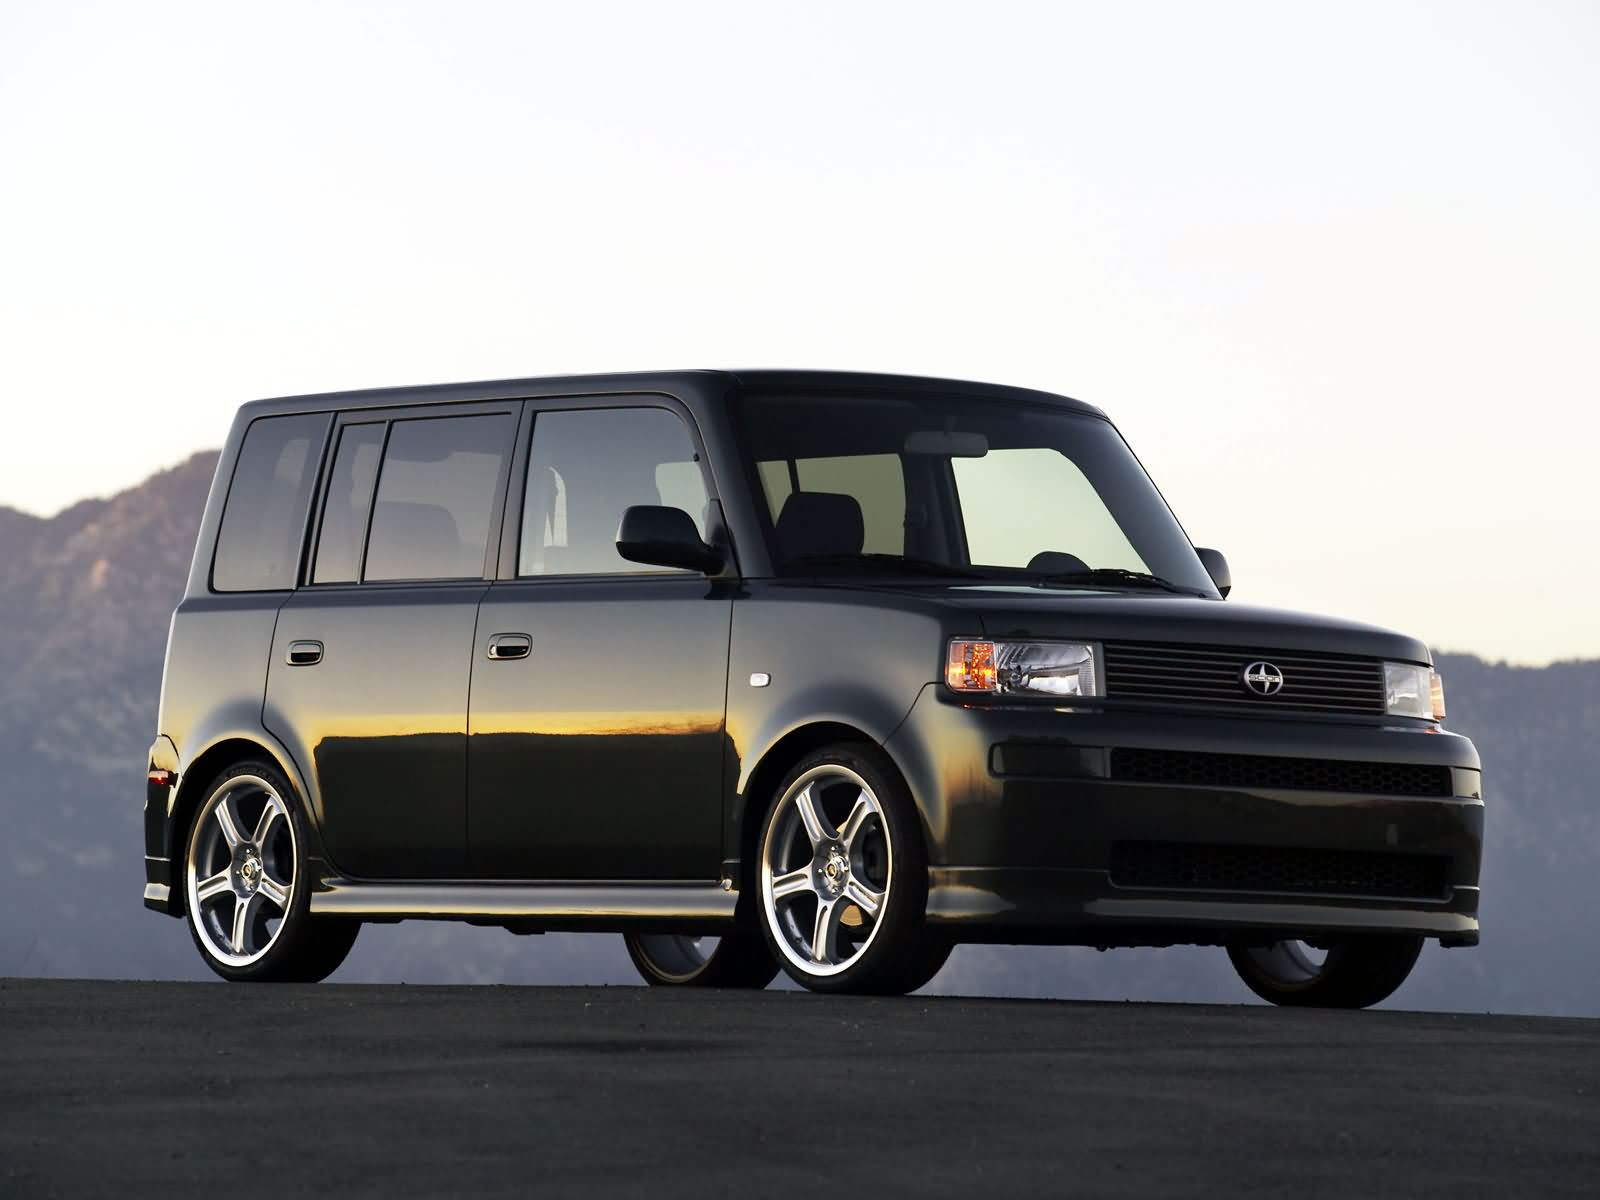 Scion Xb 2005 Wallpaper #2